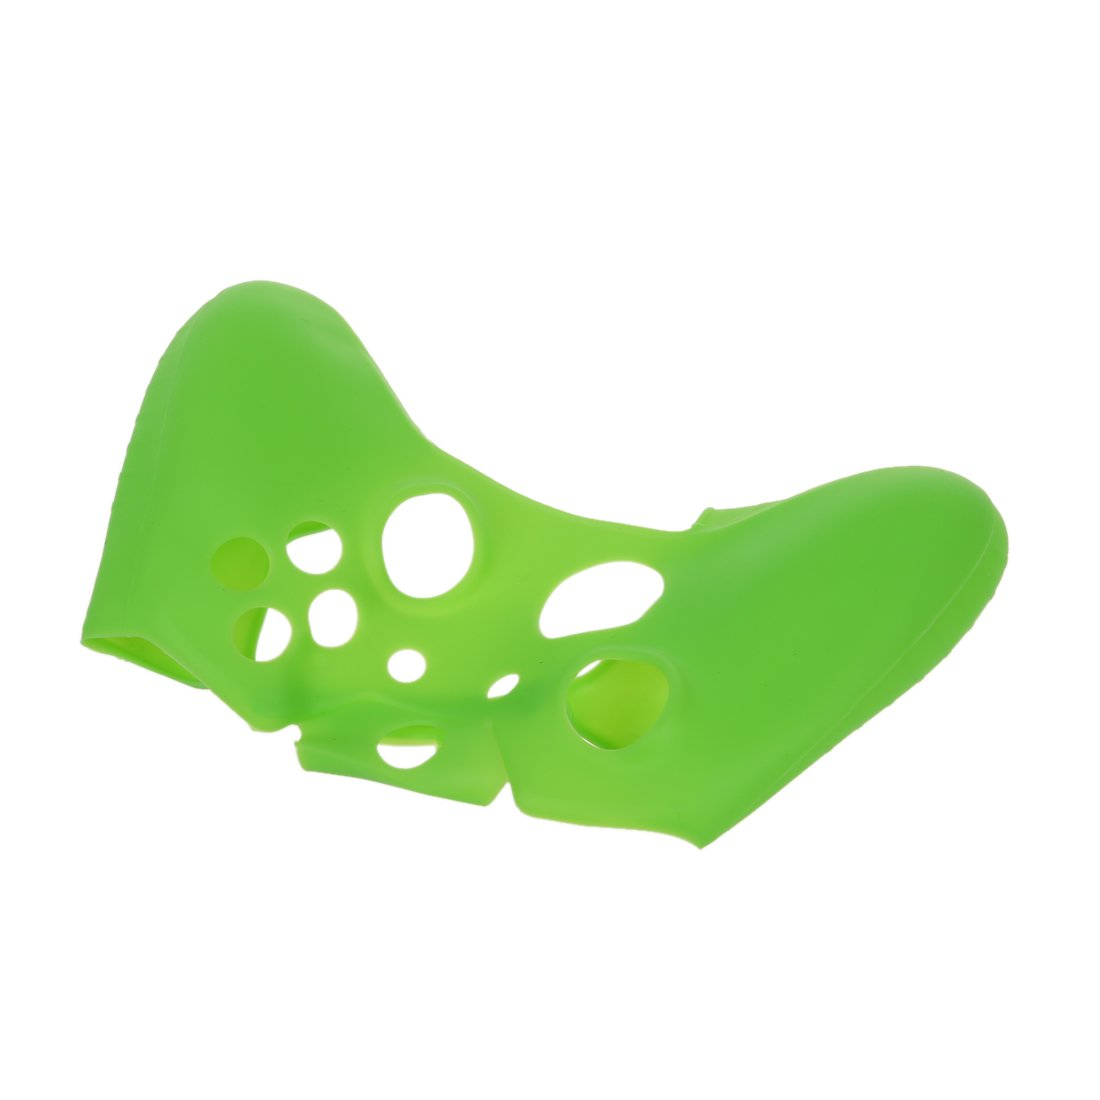 SODIAL(R) Soft Silicone Gel Protective Skin Cover Case for XBOX ONE Controller Green by SODIAL(R) (Image #2)